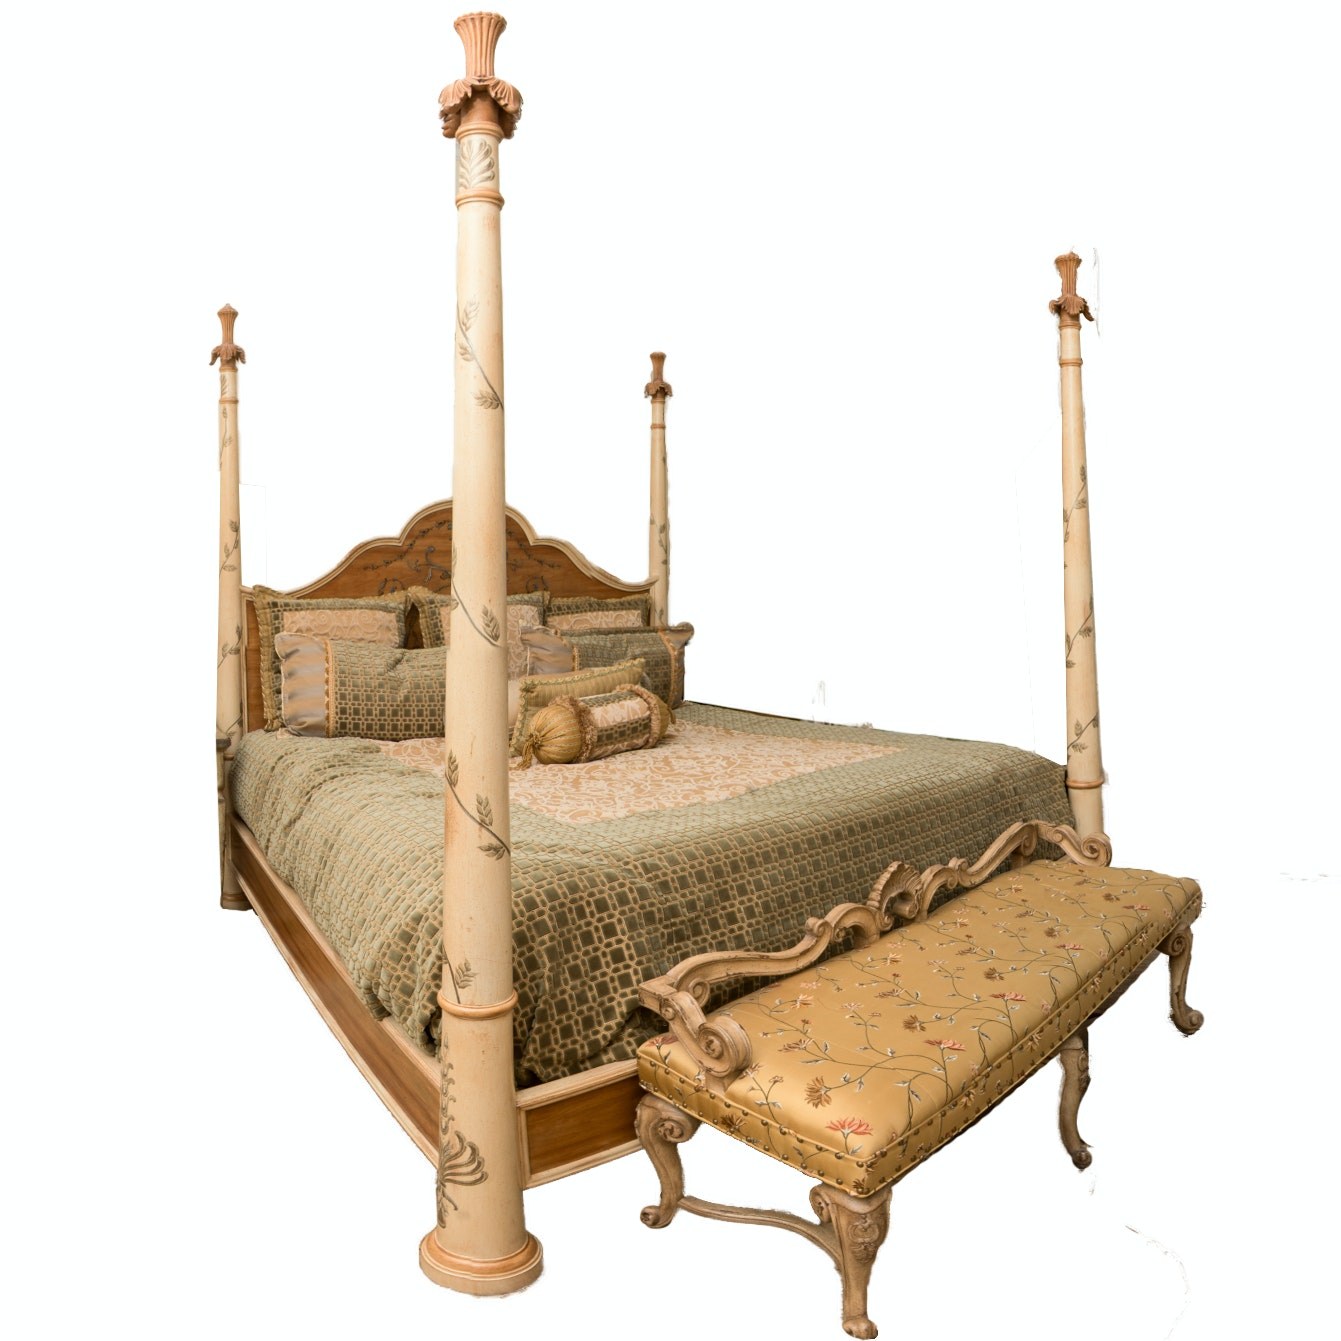 European Inspired King Size Four Poster Bed by Ferguson Copeland